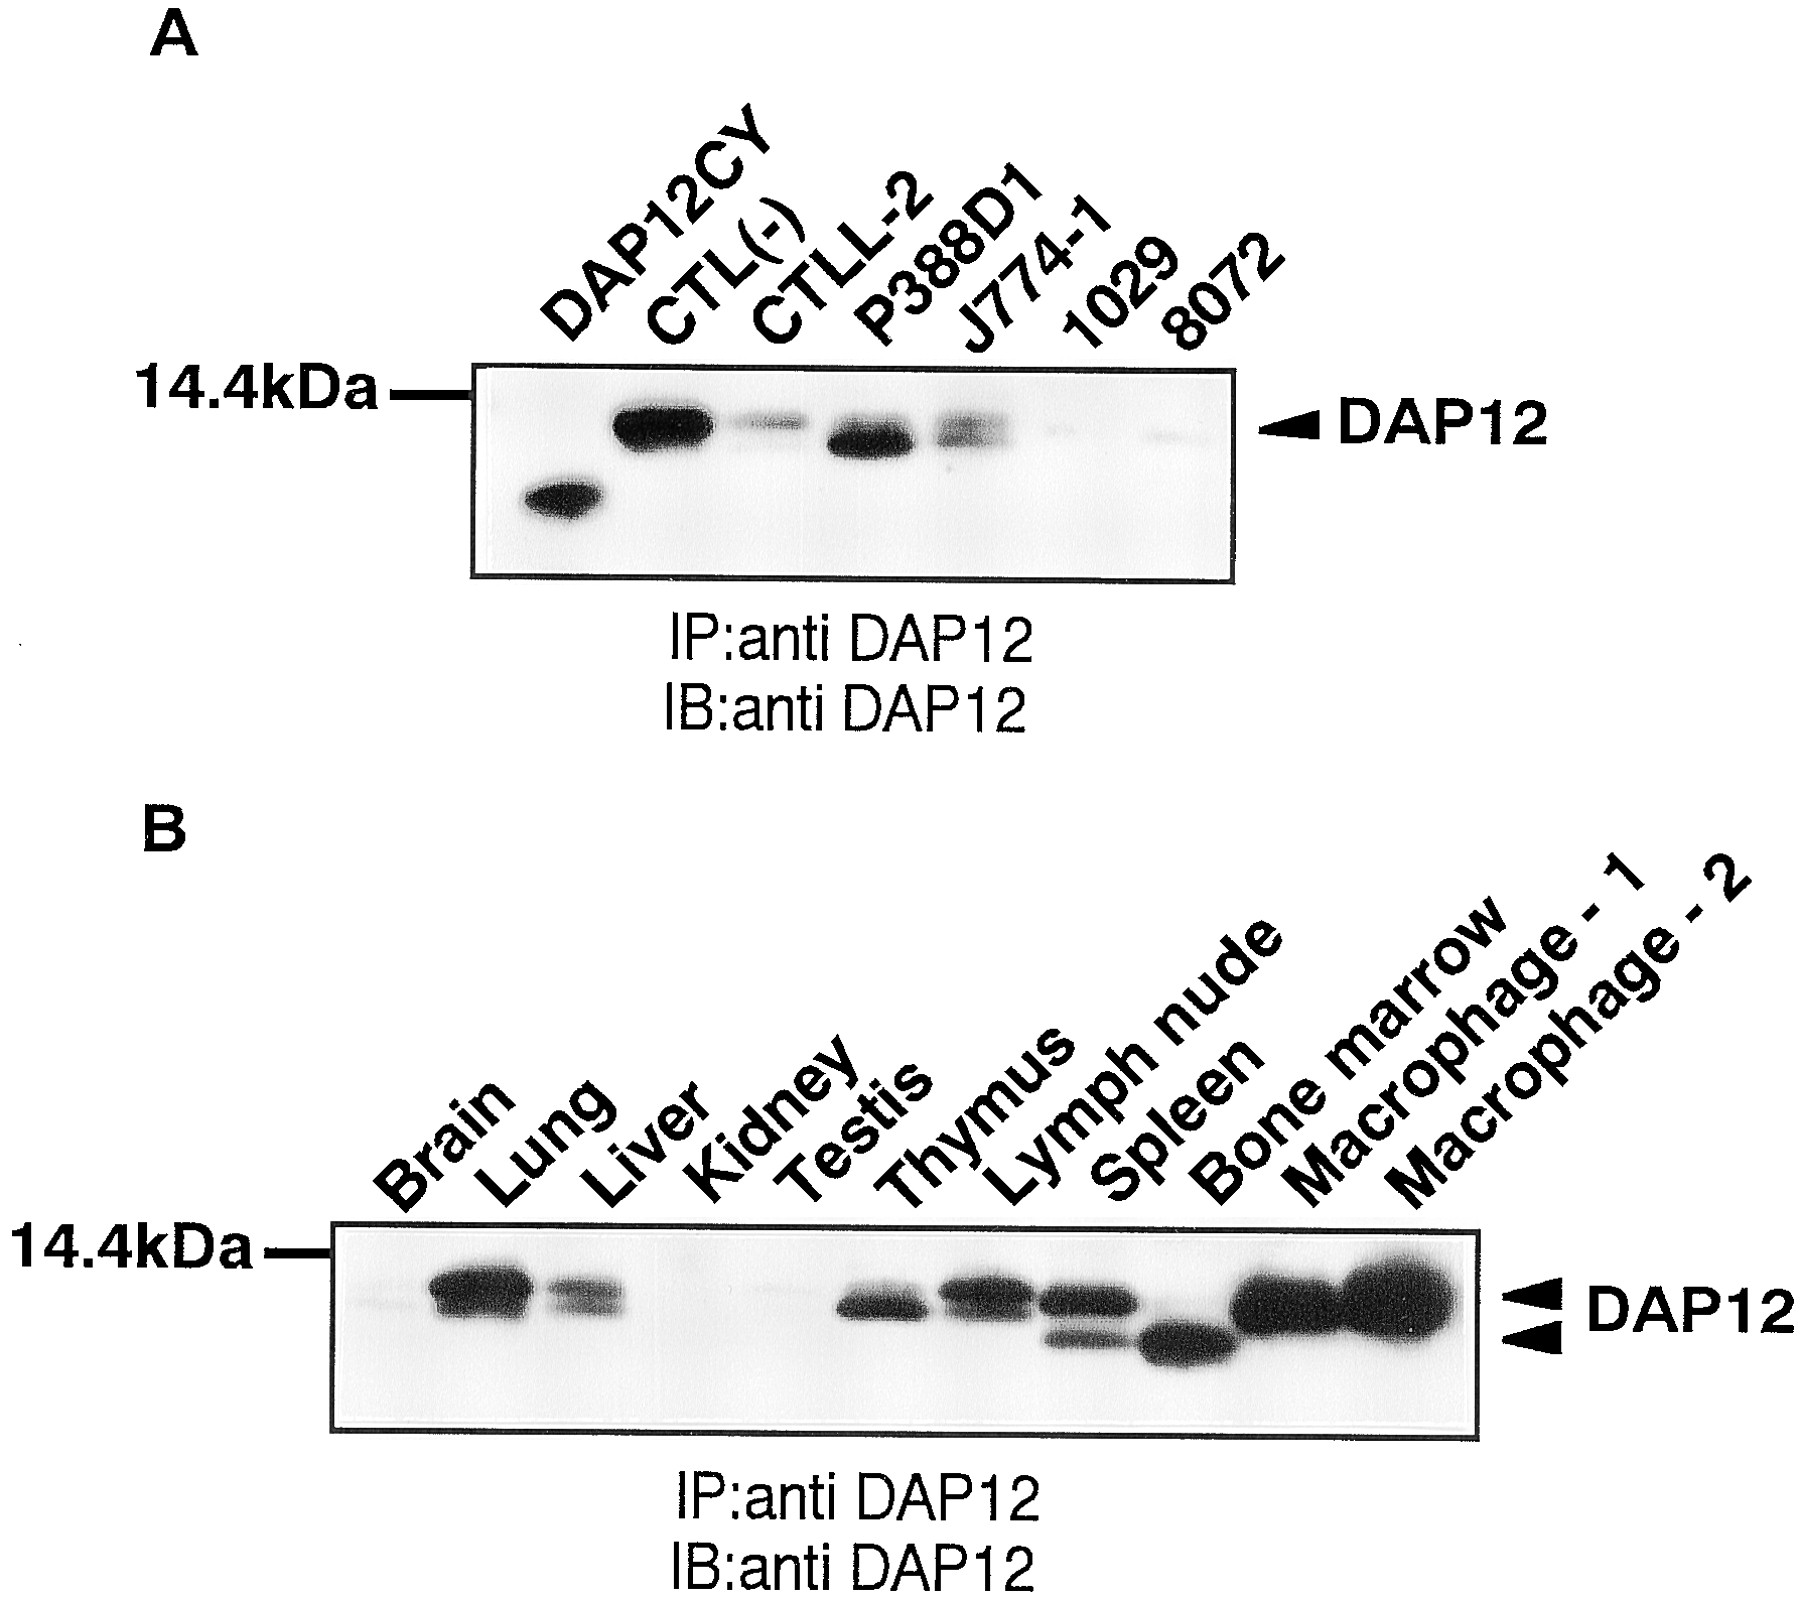 the role of the dap12 signal in mouse myeloid differentiation